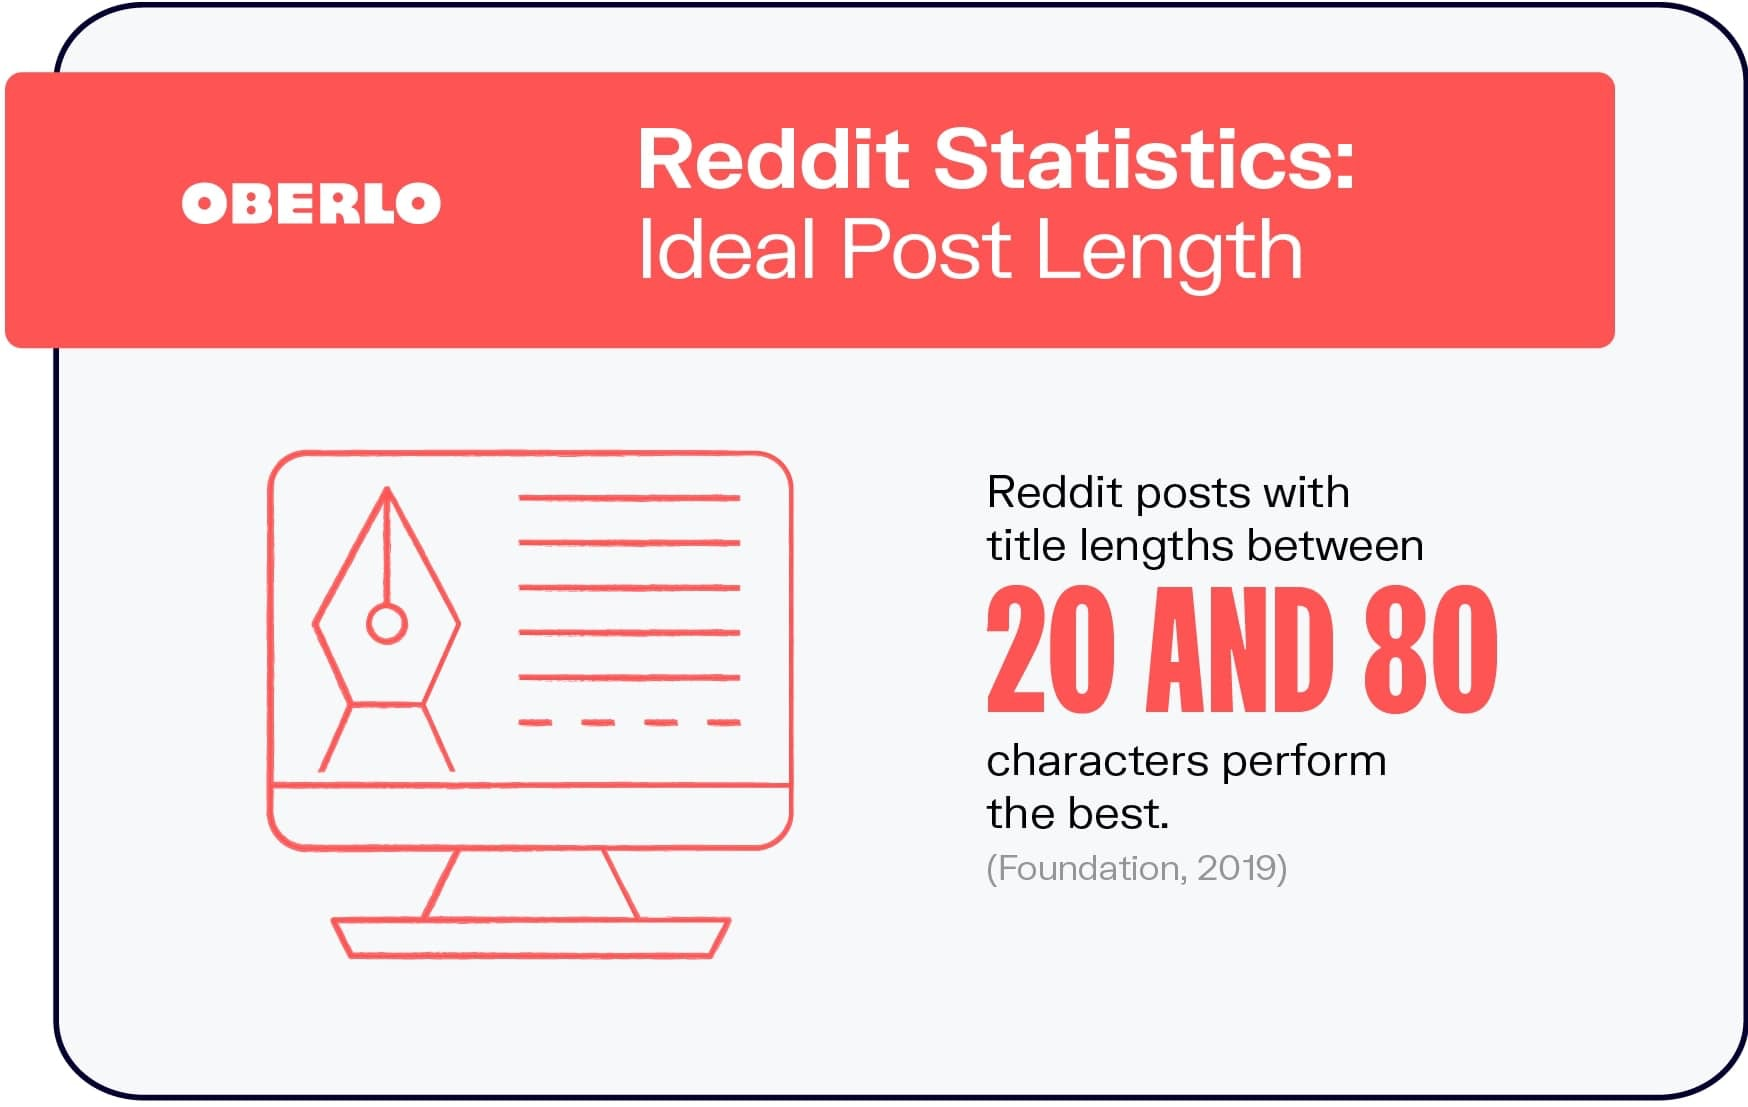 Reddit Statistics: Ideal Post Length